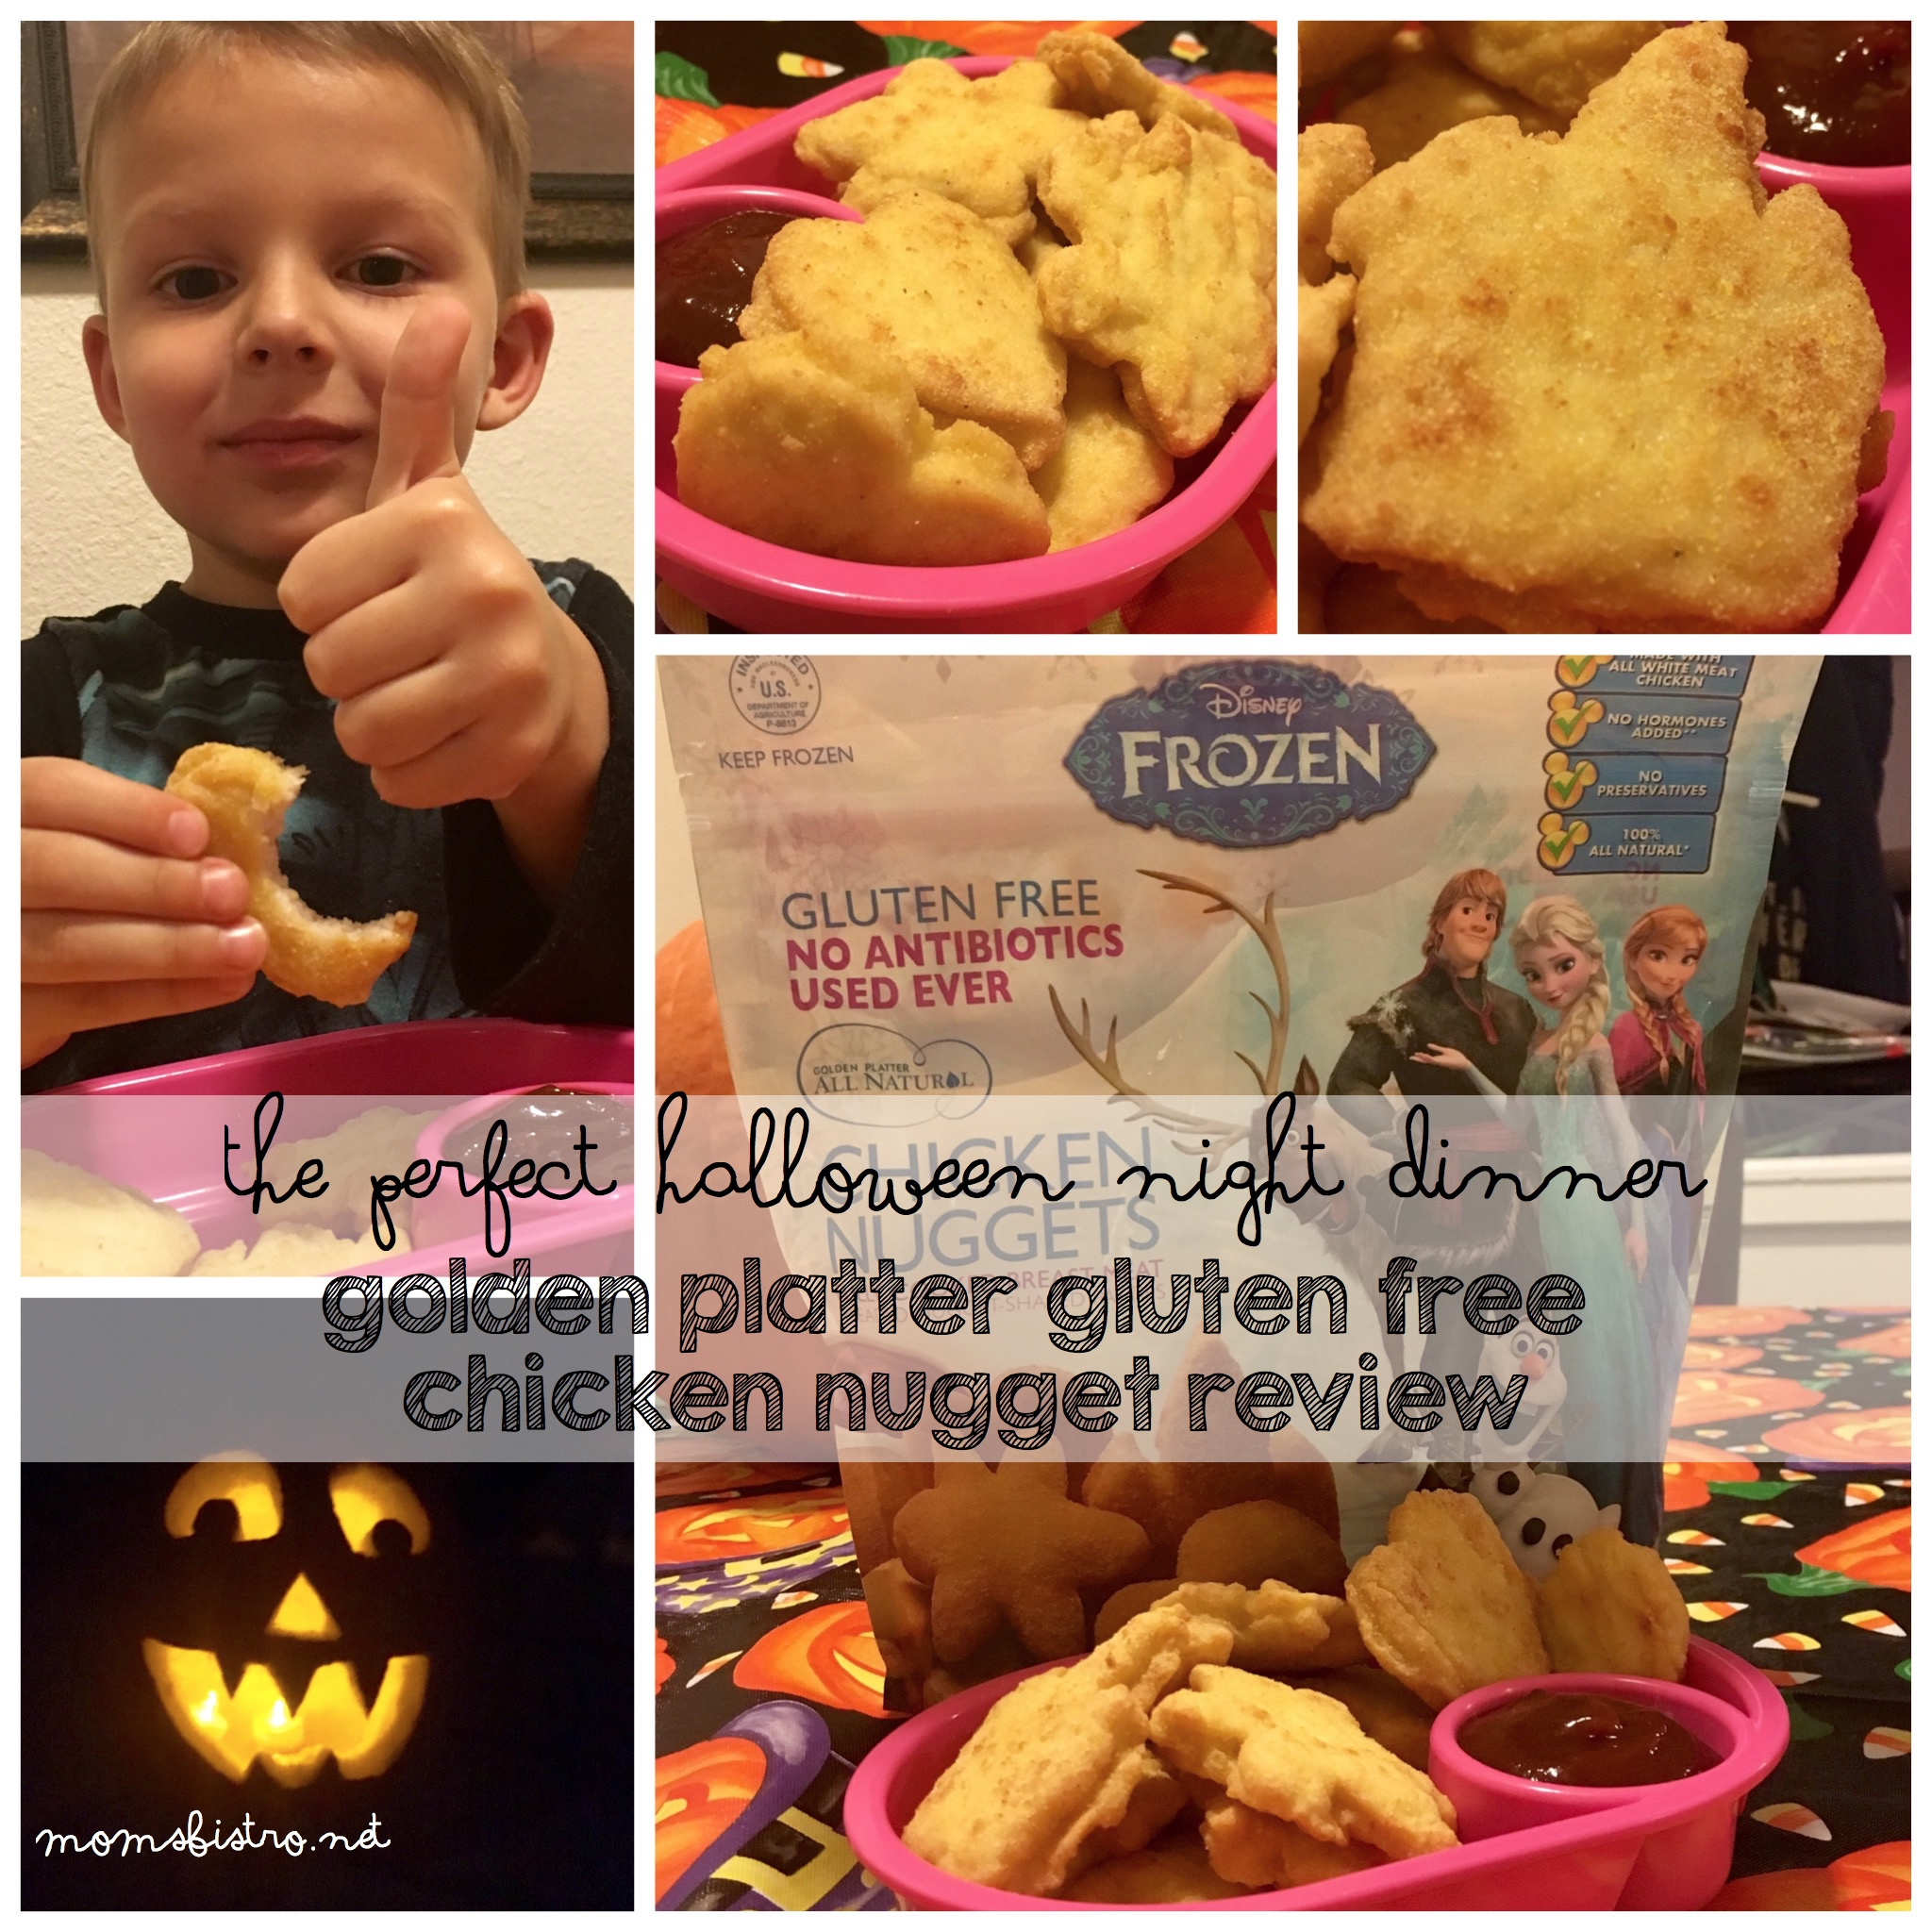 Are You Still Looking For The Perfect Halloween Night Dinner?  These Golden Platter Gluten-Free Chicken Nuggets Are Sure To Please – Golden Platter Chicken Nugget Review